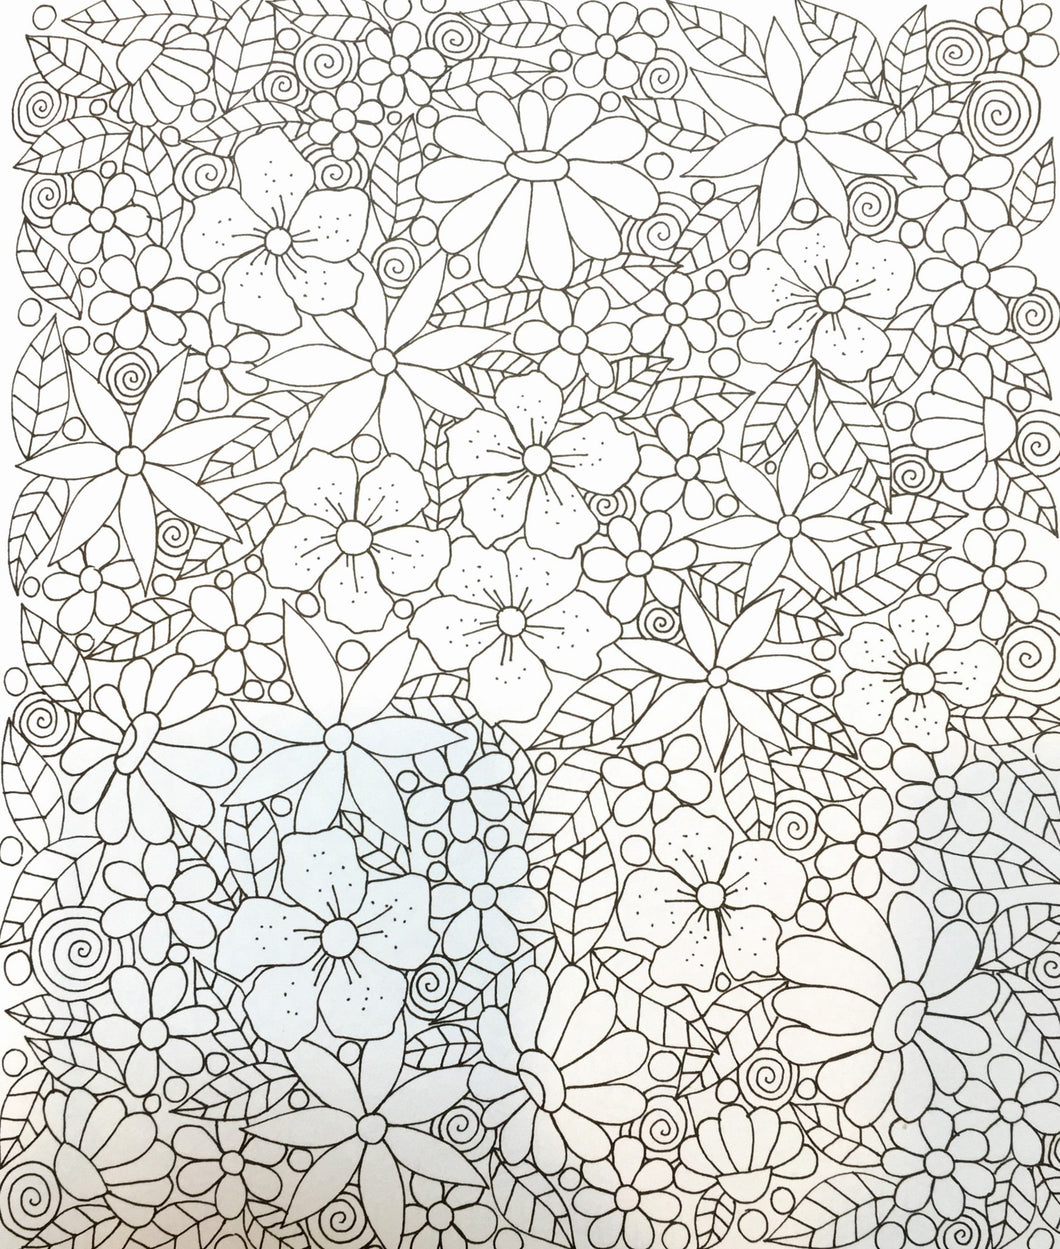 Zendoodle coloring enchanting gardens -  Enchanting Gardens Captivating Florals To Color And Display Coloring Book Zone